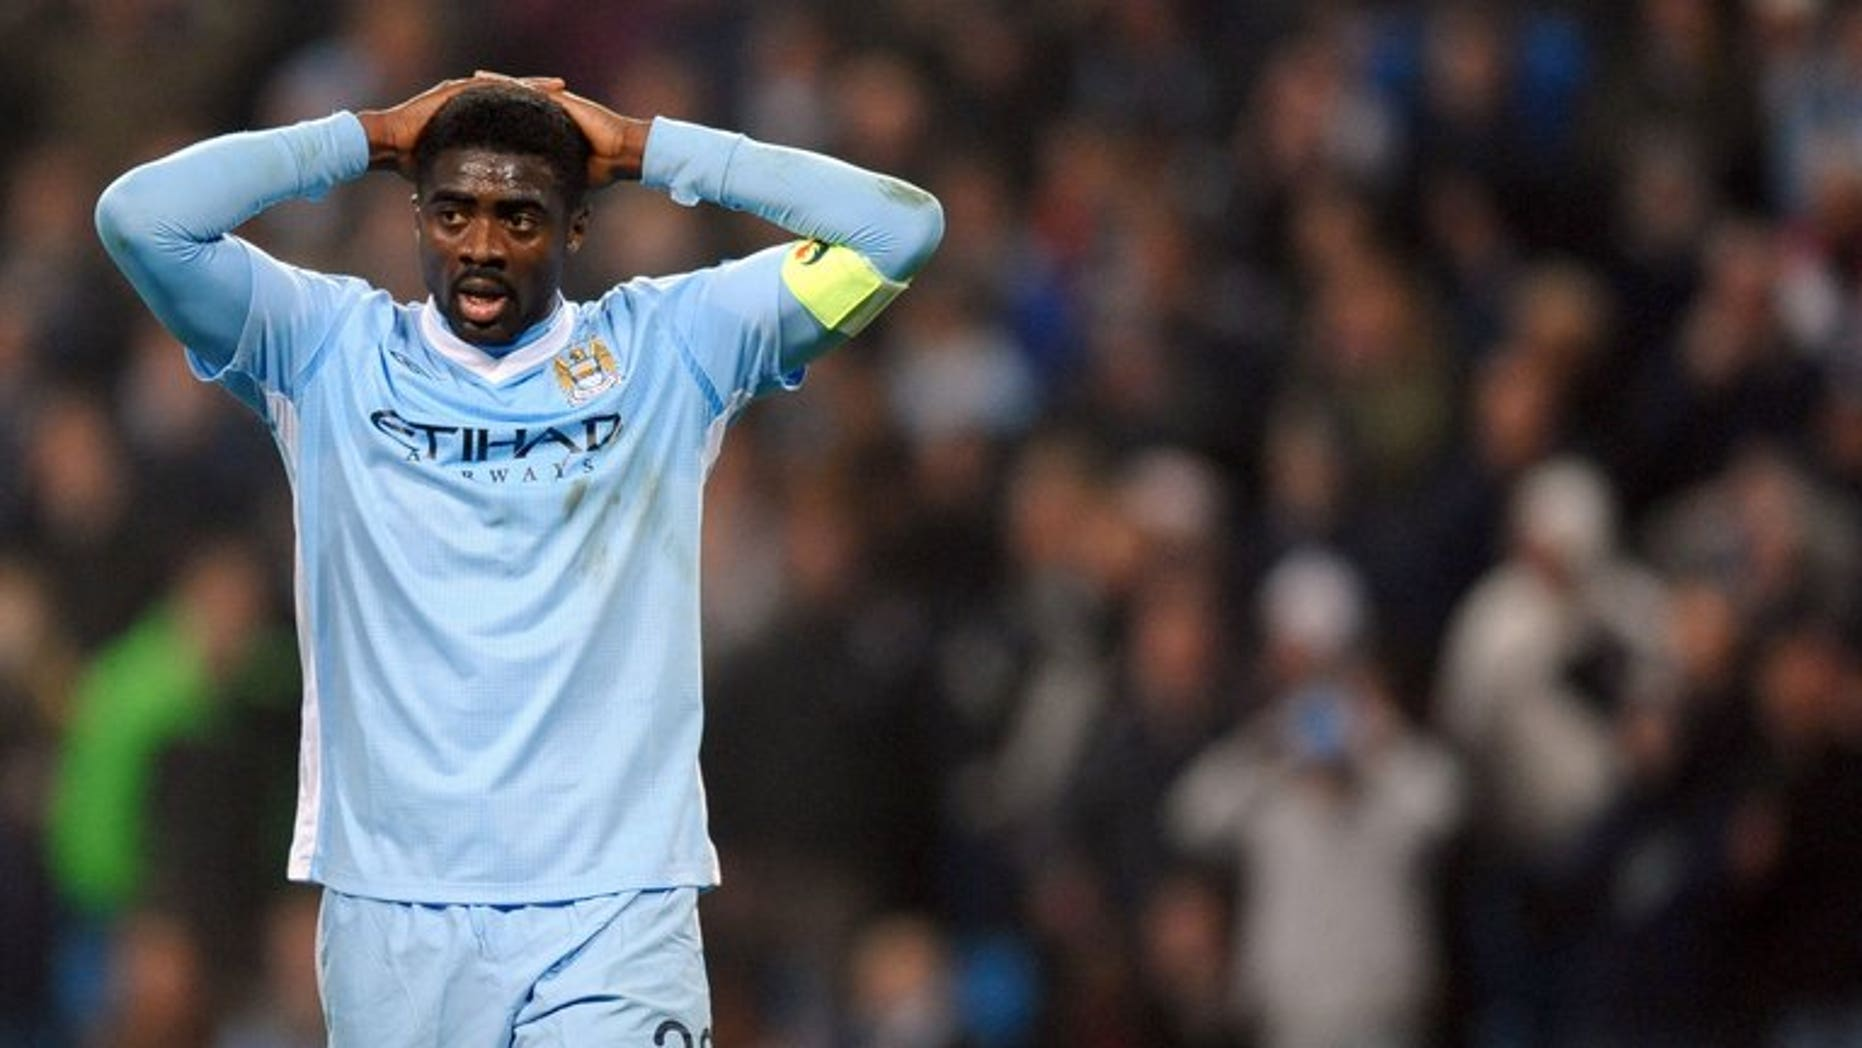 Manchester City's Kolo Toure after their UEFA Europa League defeat to Sporting Lisbon at the Etihad Stadium in Manchester, on March 15, 2012. Toure has joined Liverpool from City on a free transfer, the Merseyside club announced.